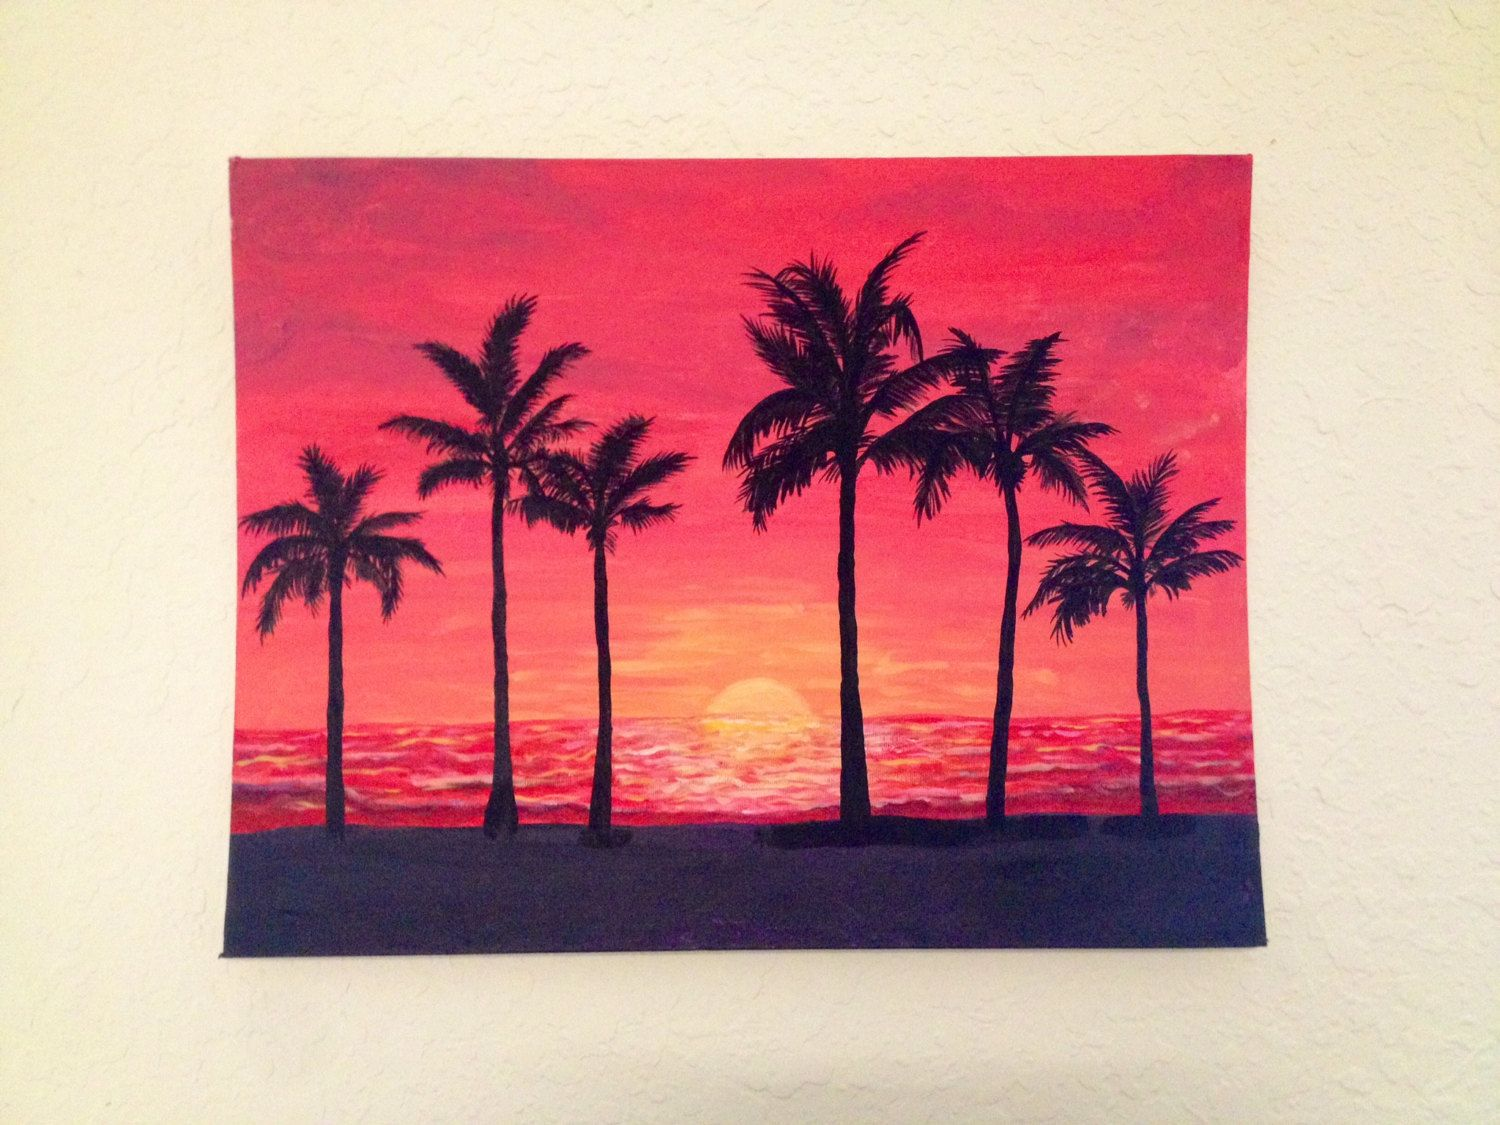 Sunset With Palm Tree Silhouettes Acrylic Painting By Katejpaint